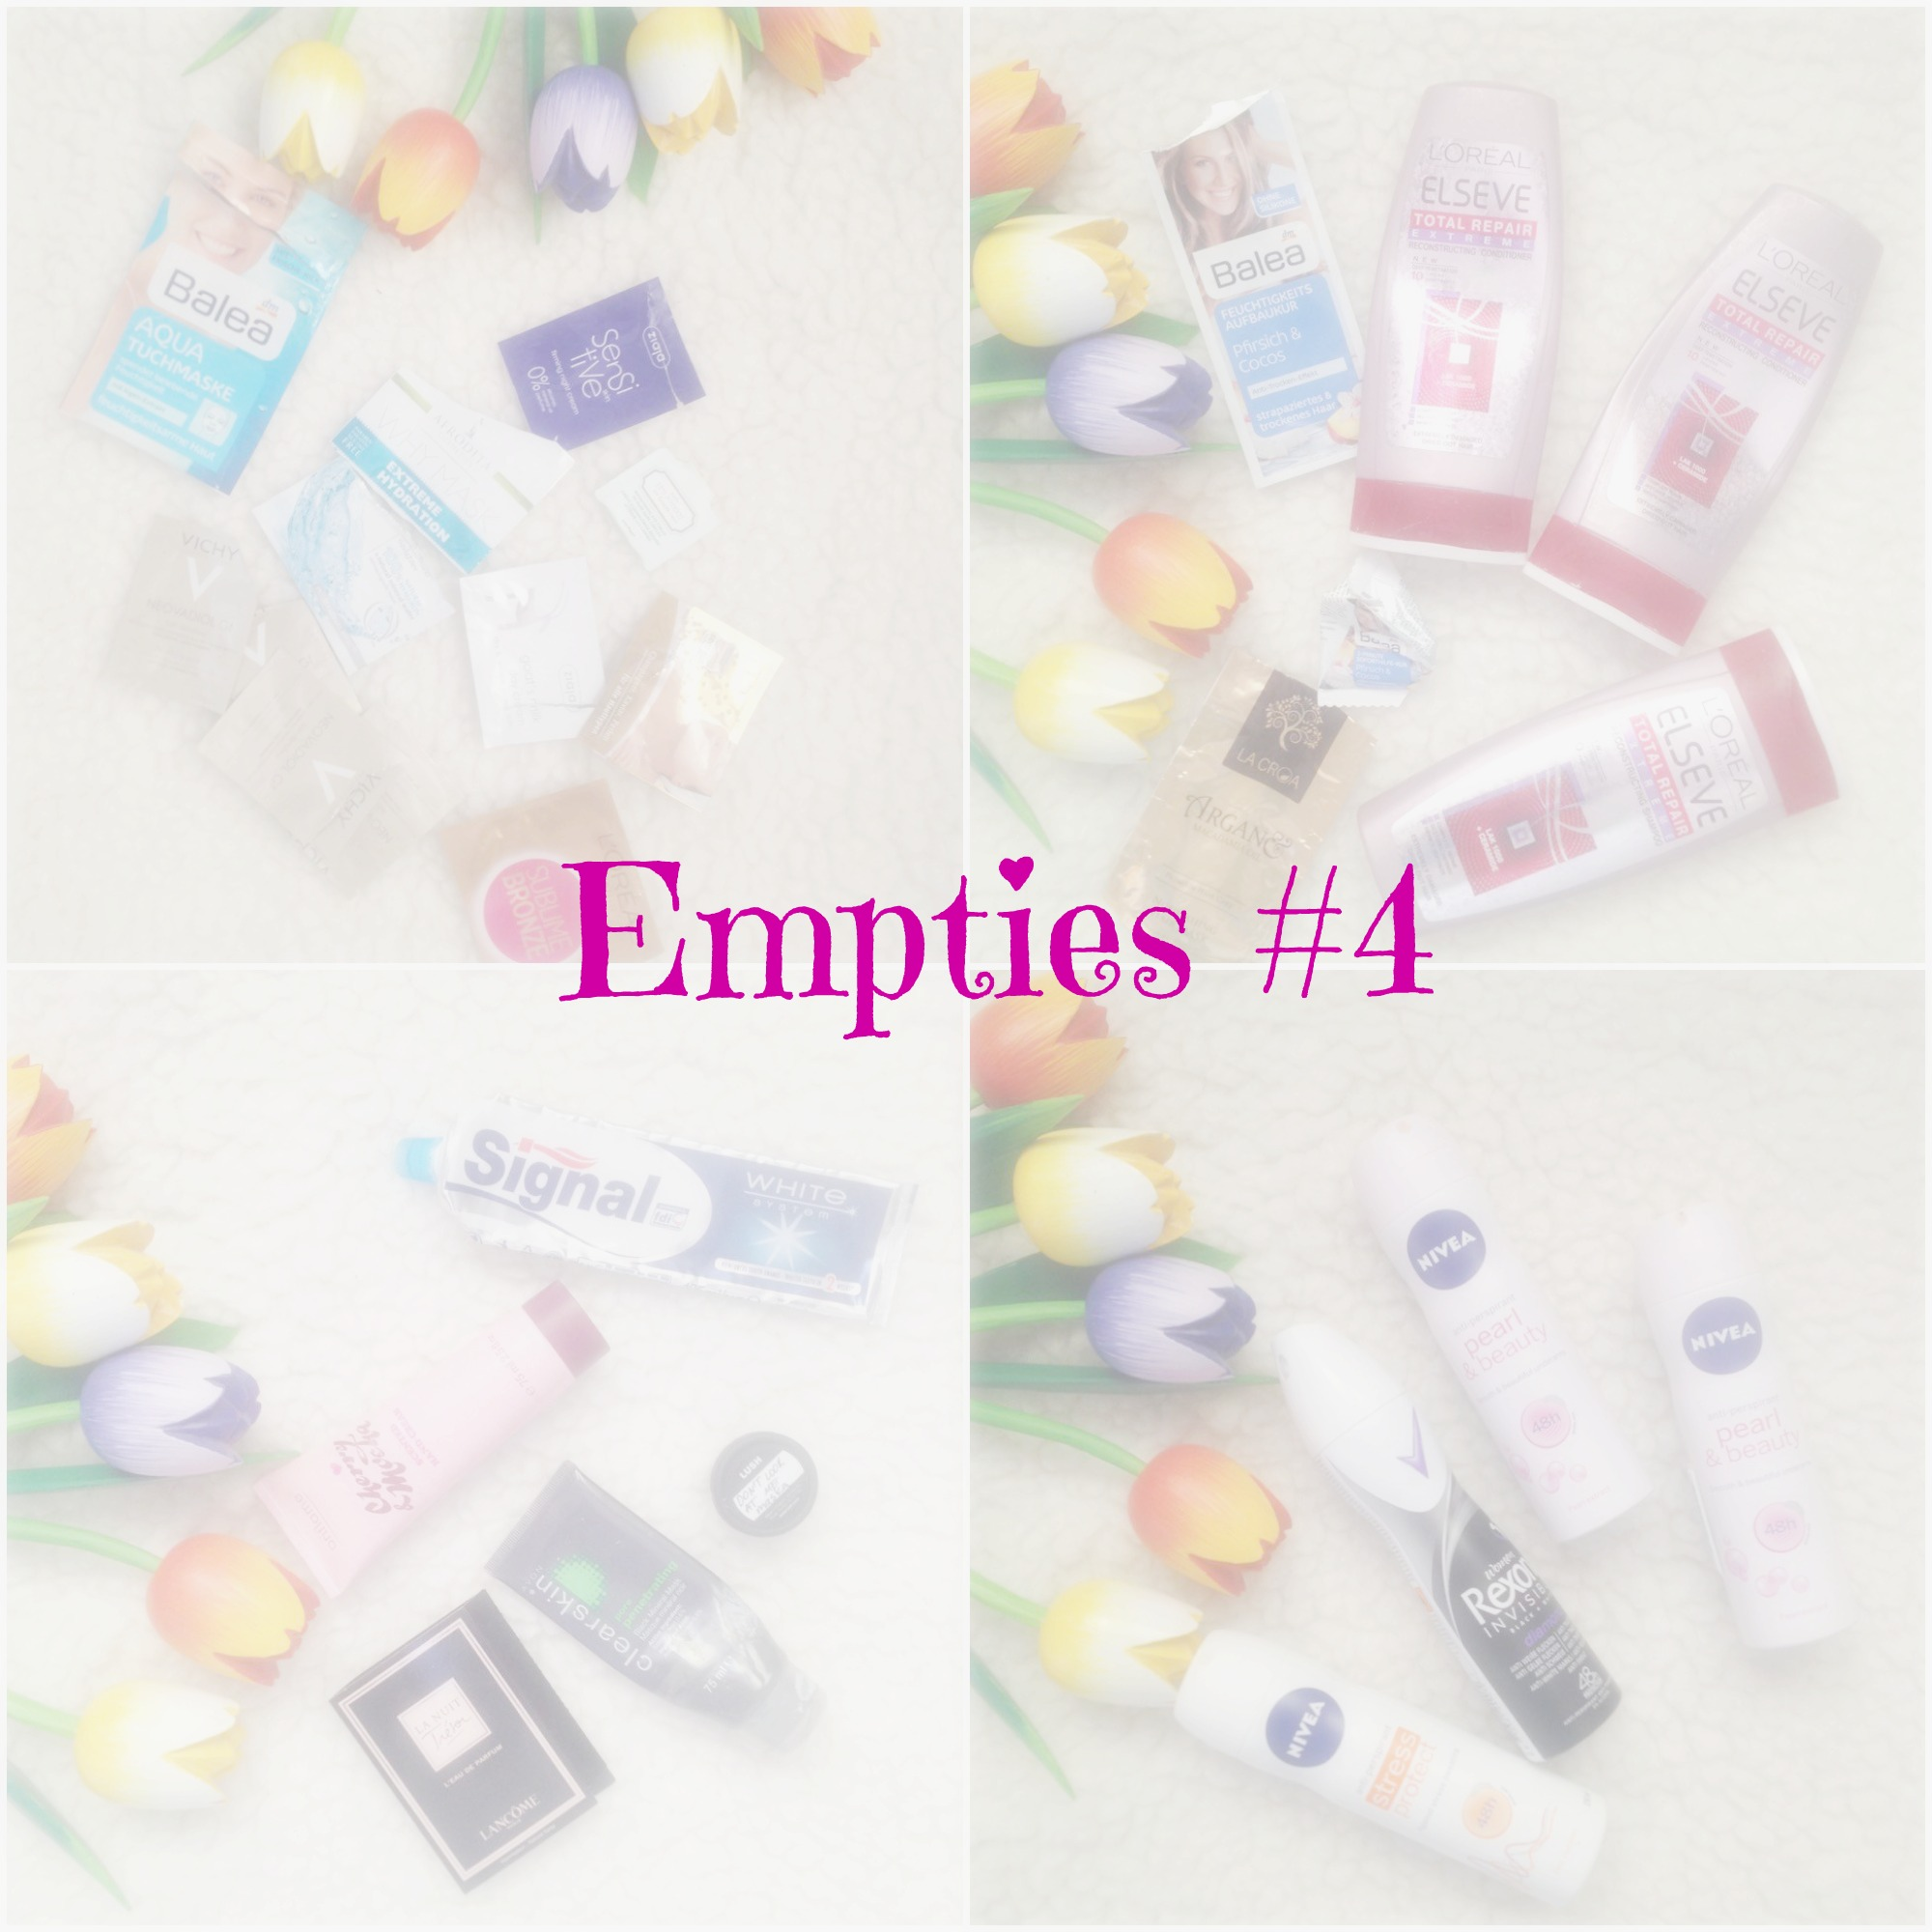 Empties #4 cover